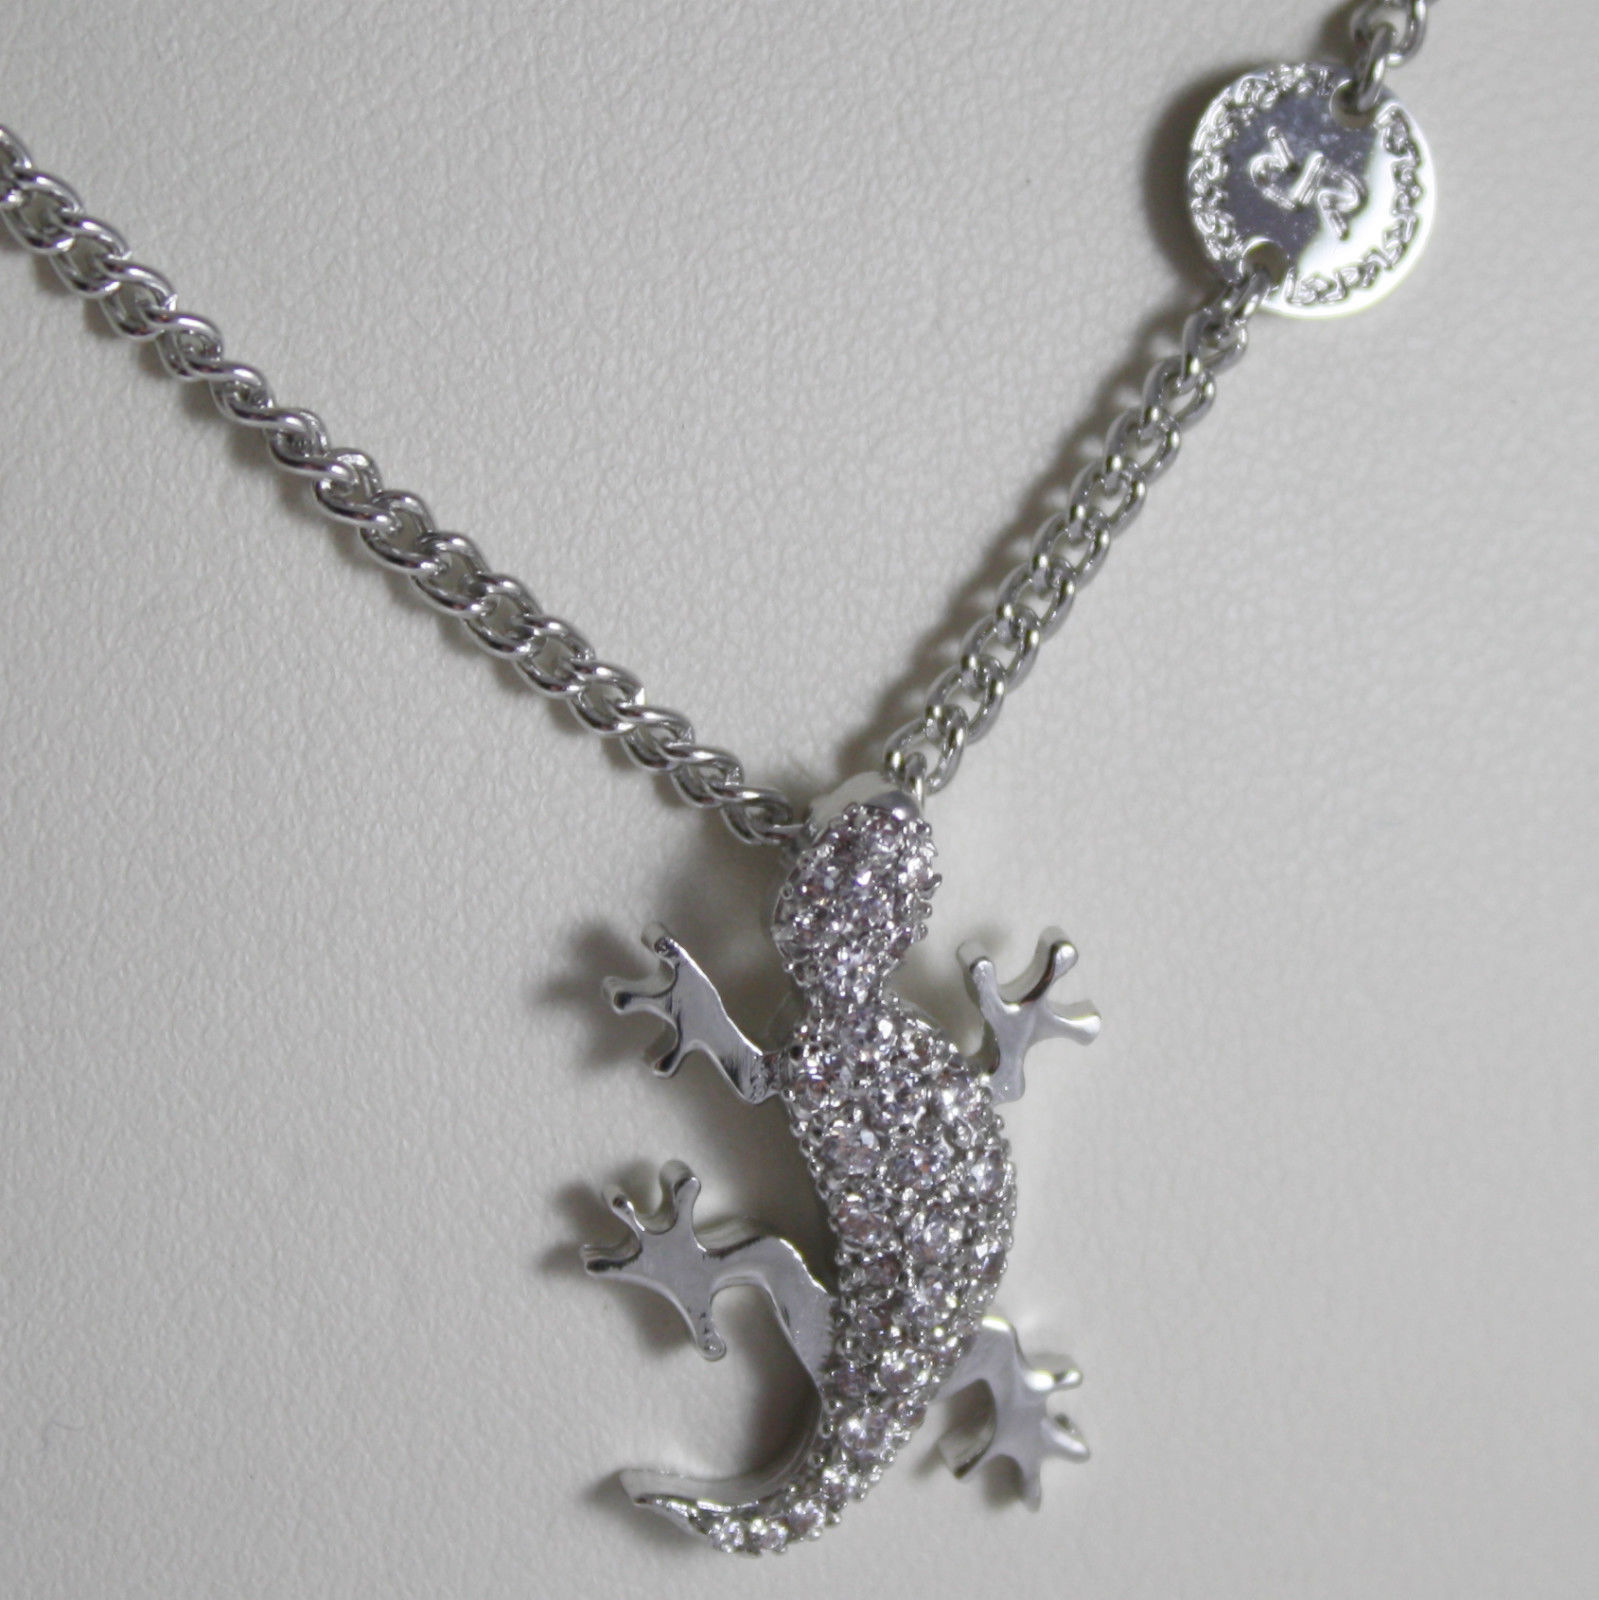 RHODIUM BRONZE NECKLACE WITH GECKO B14KBB09 CUBIC ZIRCONIA REBECCA MADE IN ITALY